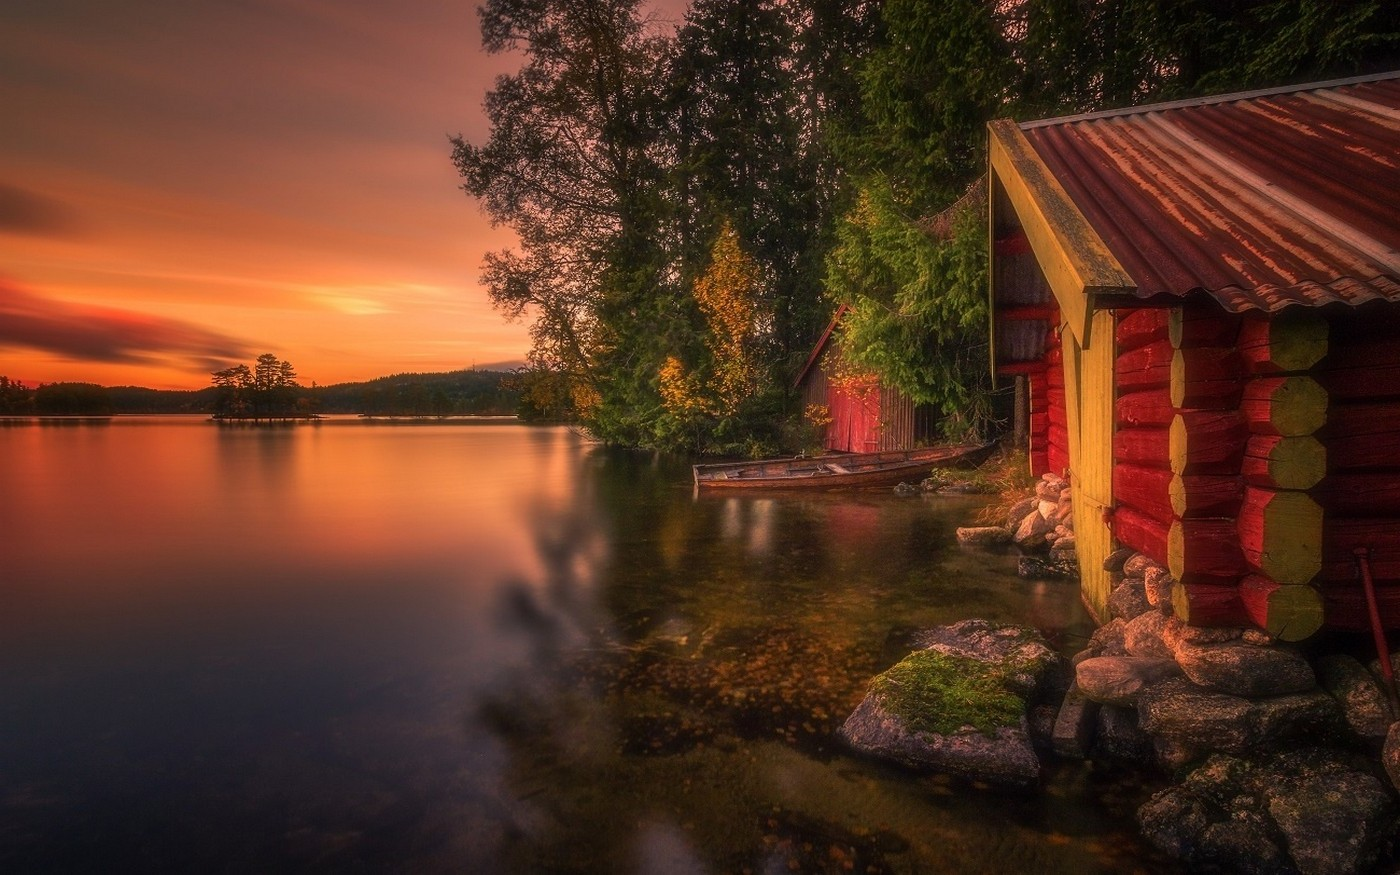 Uhd Wallpapers Fall Nature Landscape Boathouses Lake Trees Norway Fall